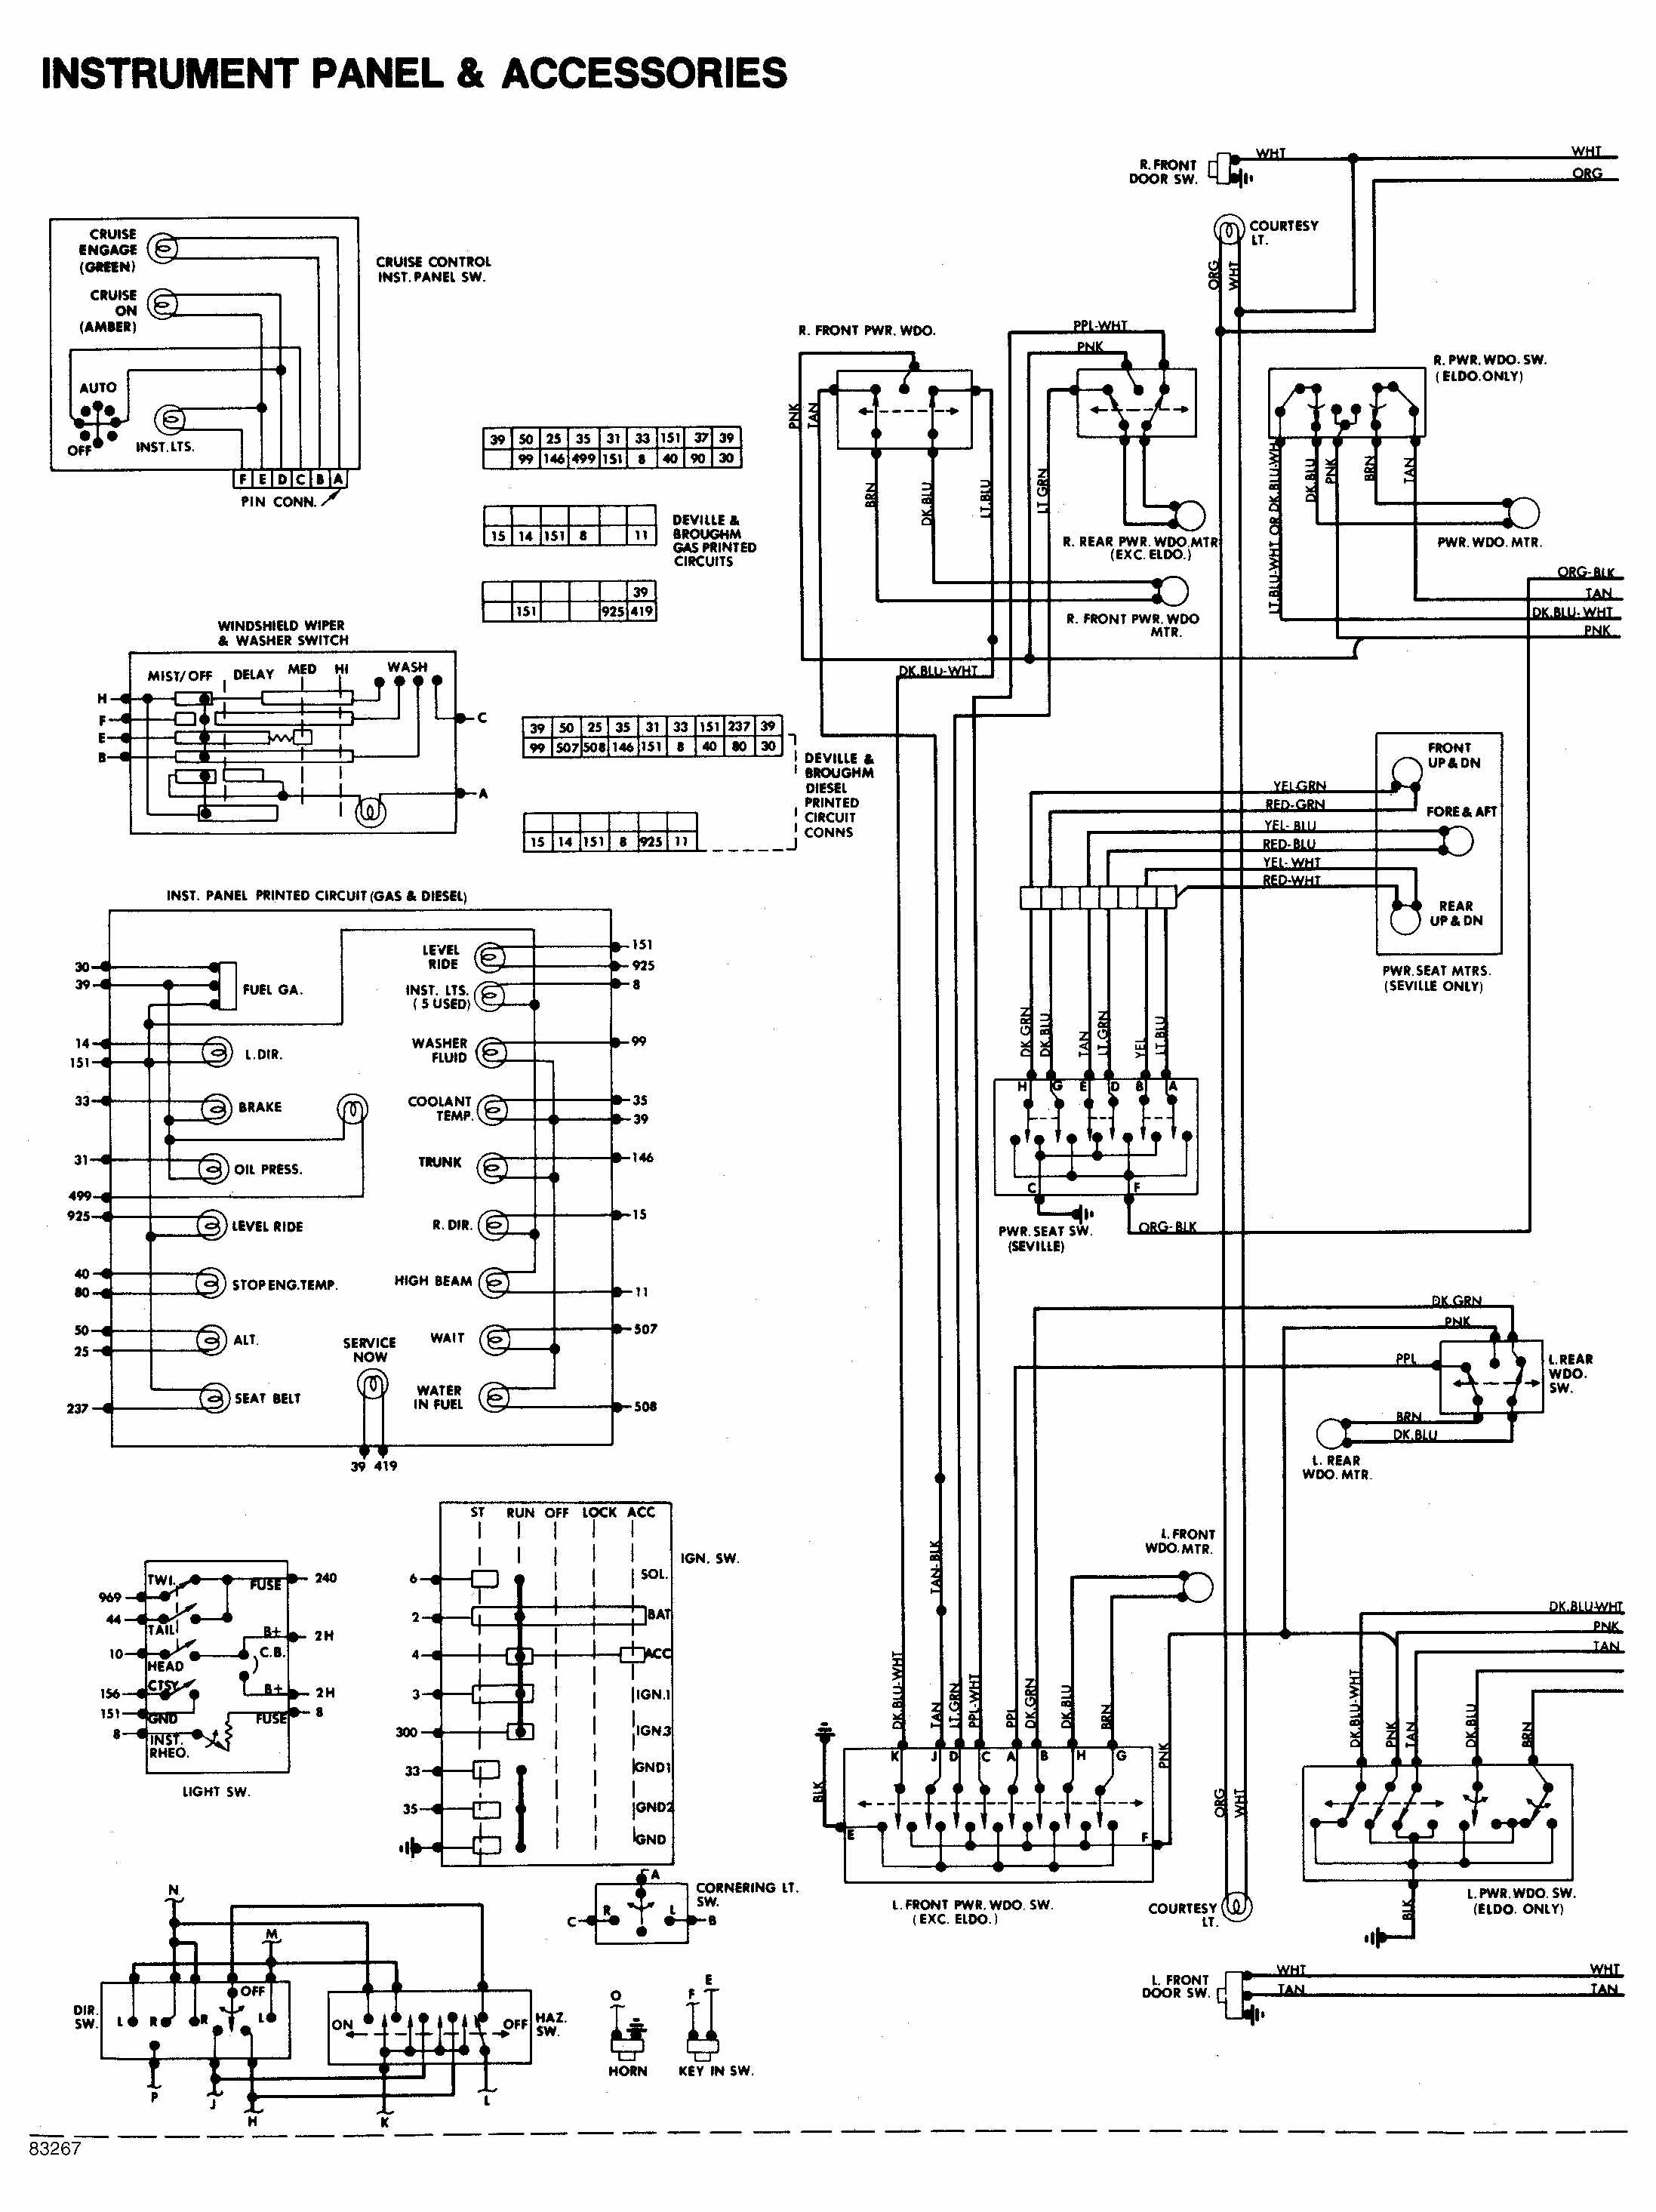 2004 cadillac northstar engine diagram wiring library schema diagram rh 12 qbbzzwq navigationsvergleich de